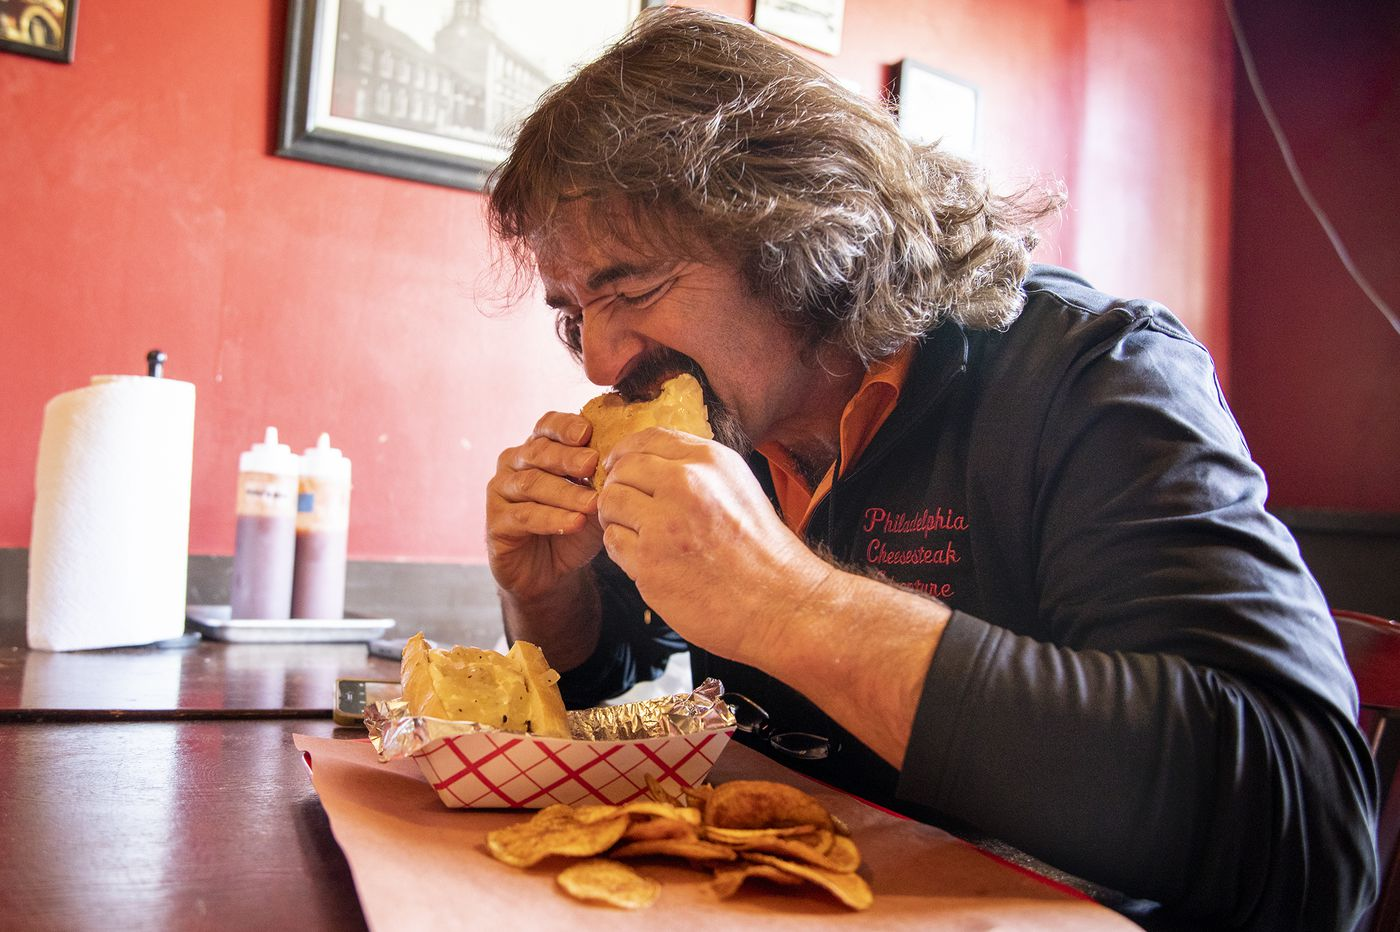 Who is Philly's cheesesteak authority? Maybe this guy, who ate 500 cheesesteaks in 20 months.